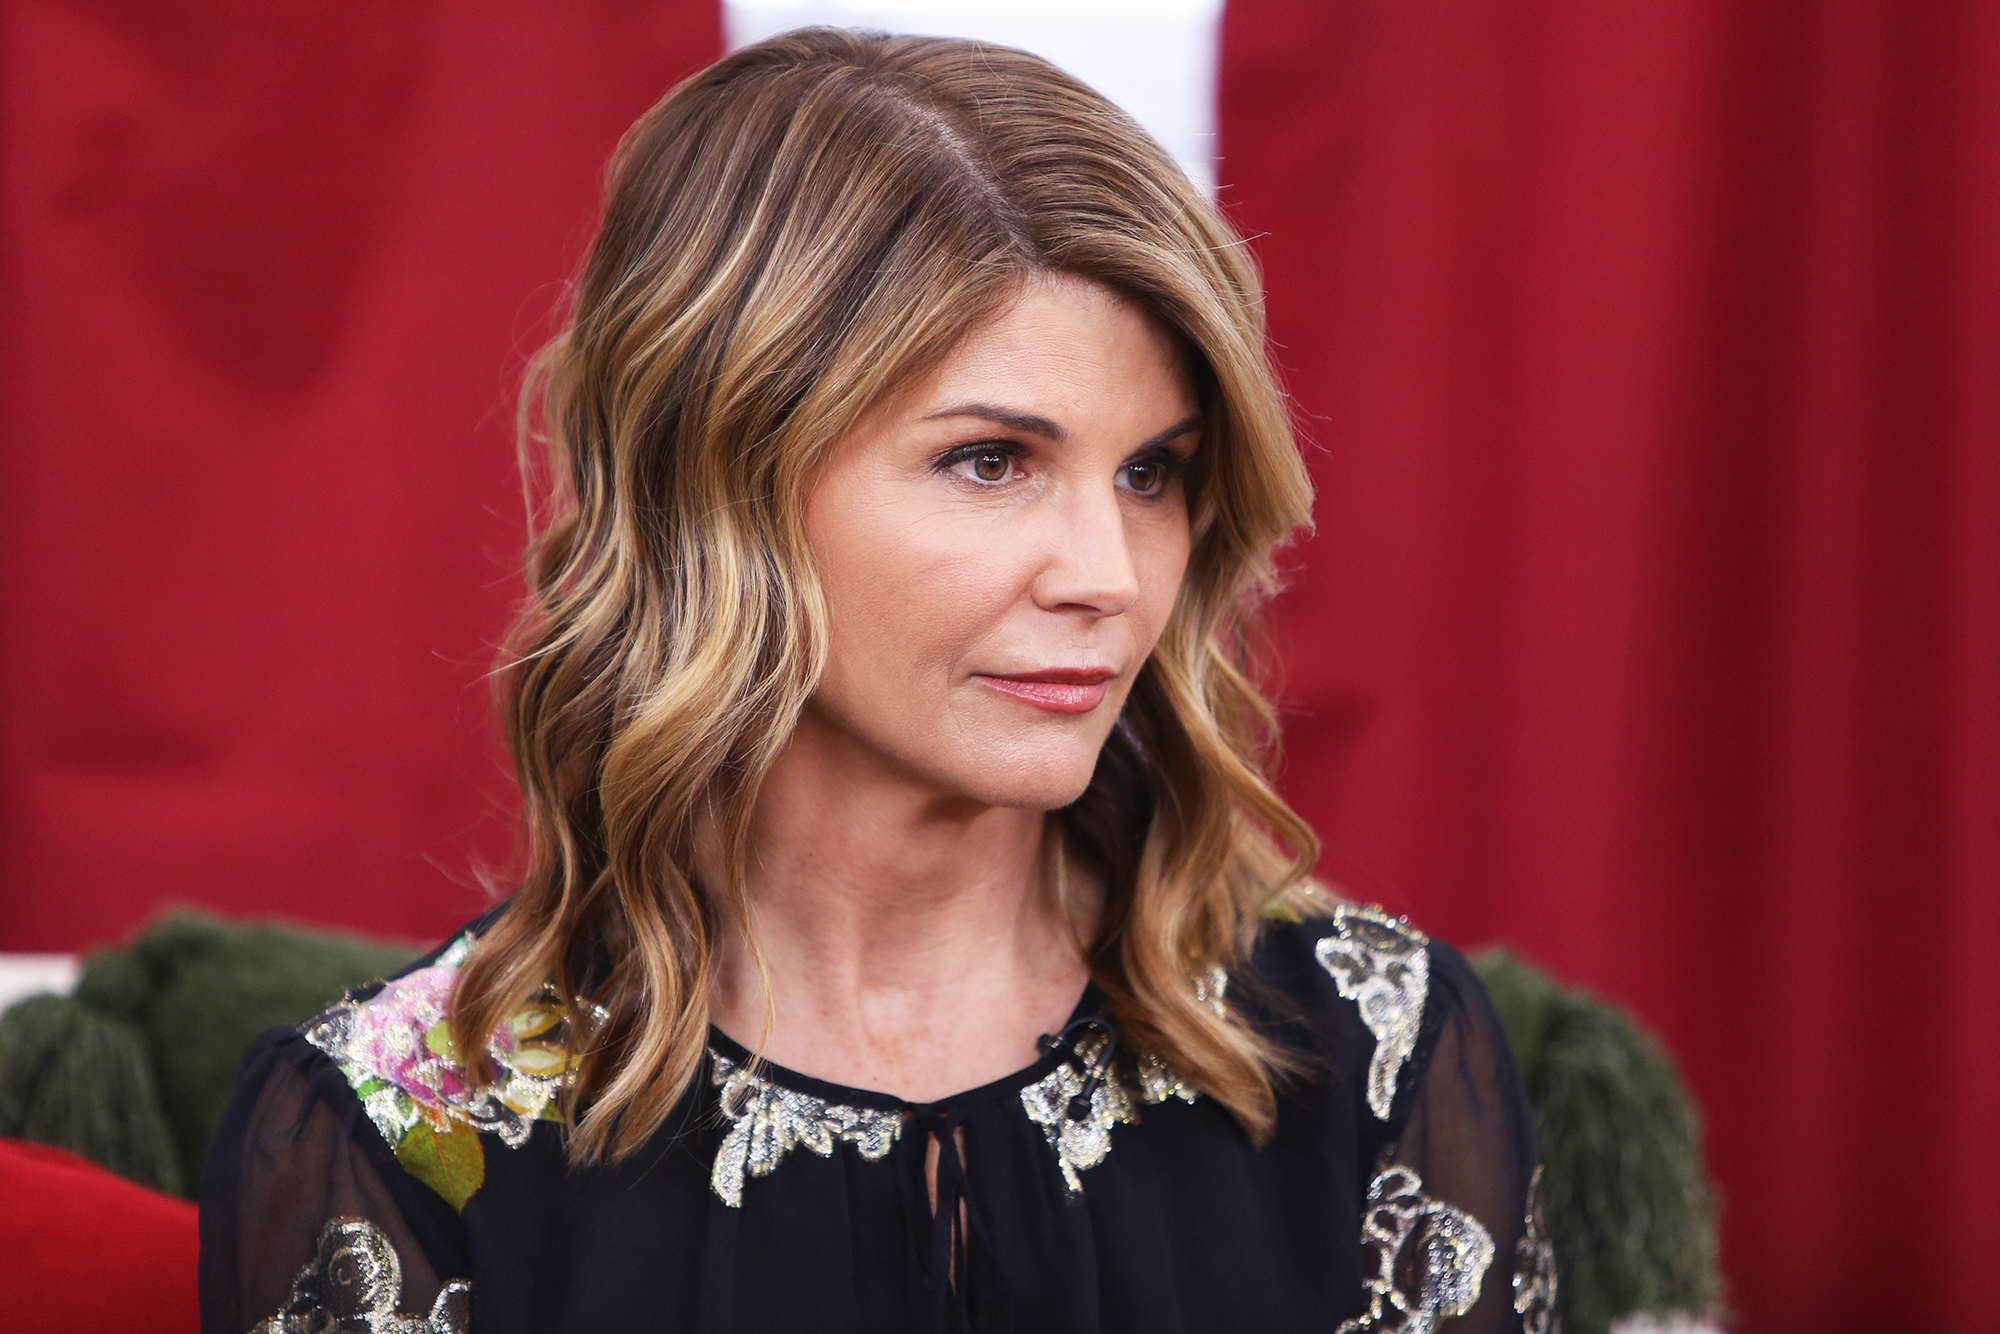 Lori Loughlin Living Her 'Worst Nightmare' Amid College Scandal